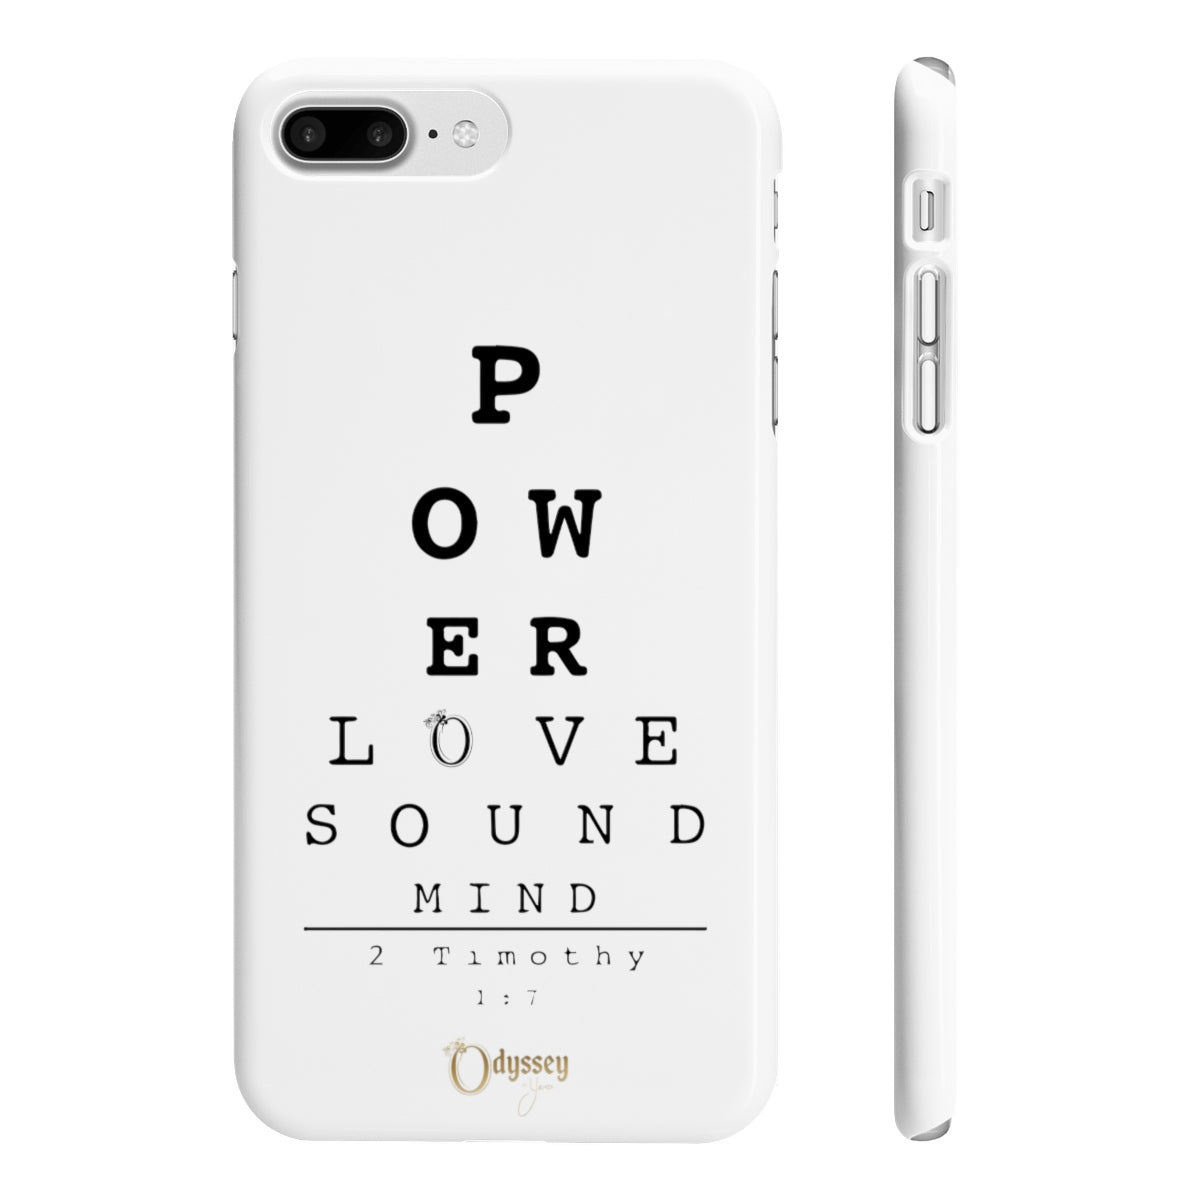 Odyssey Power, Love and Sound Mind Slim Phone Cases - Phone Case - Odyssey By Yendi